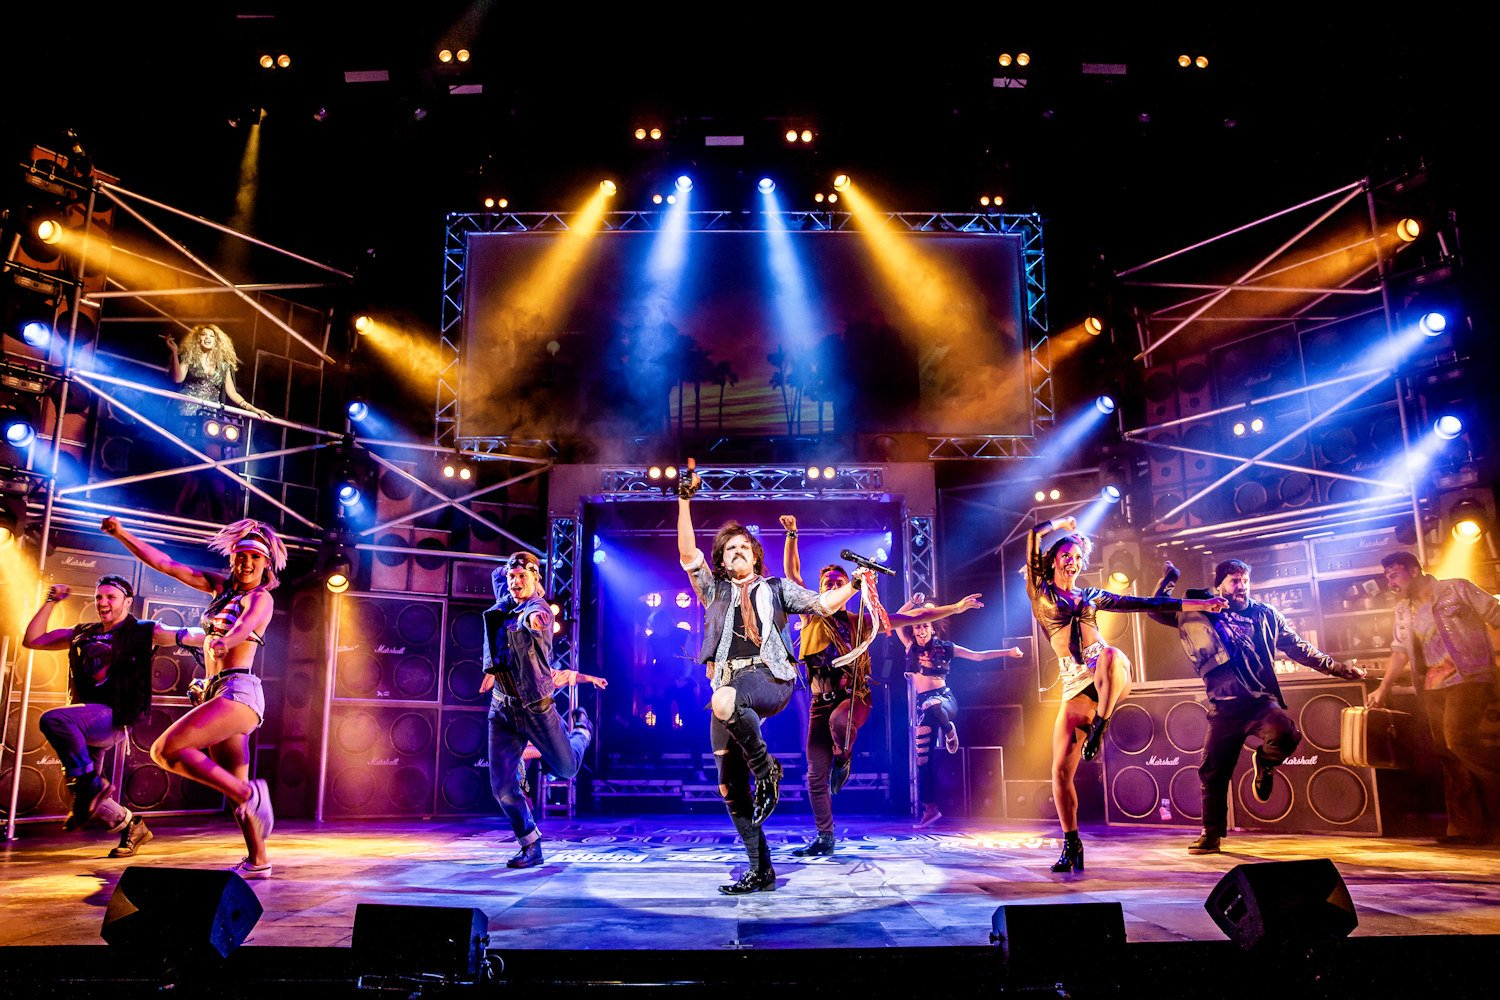 Rock of Ages is a nostalgic trip down memory lane to the days when big hair, eyeliner and tight trousers were the norm. And that was just the men...